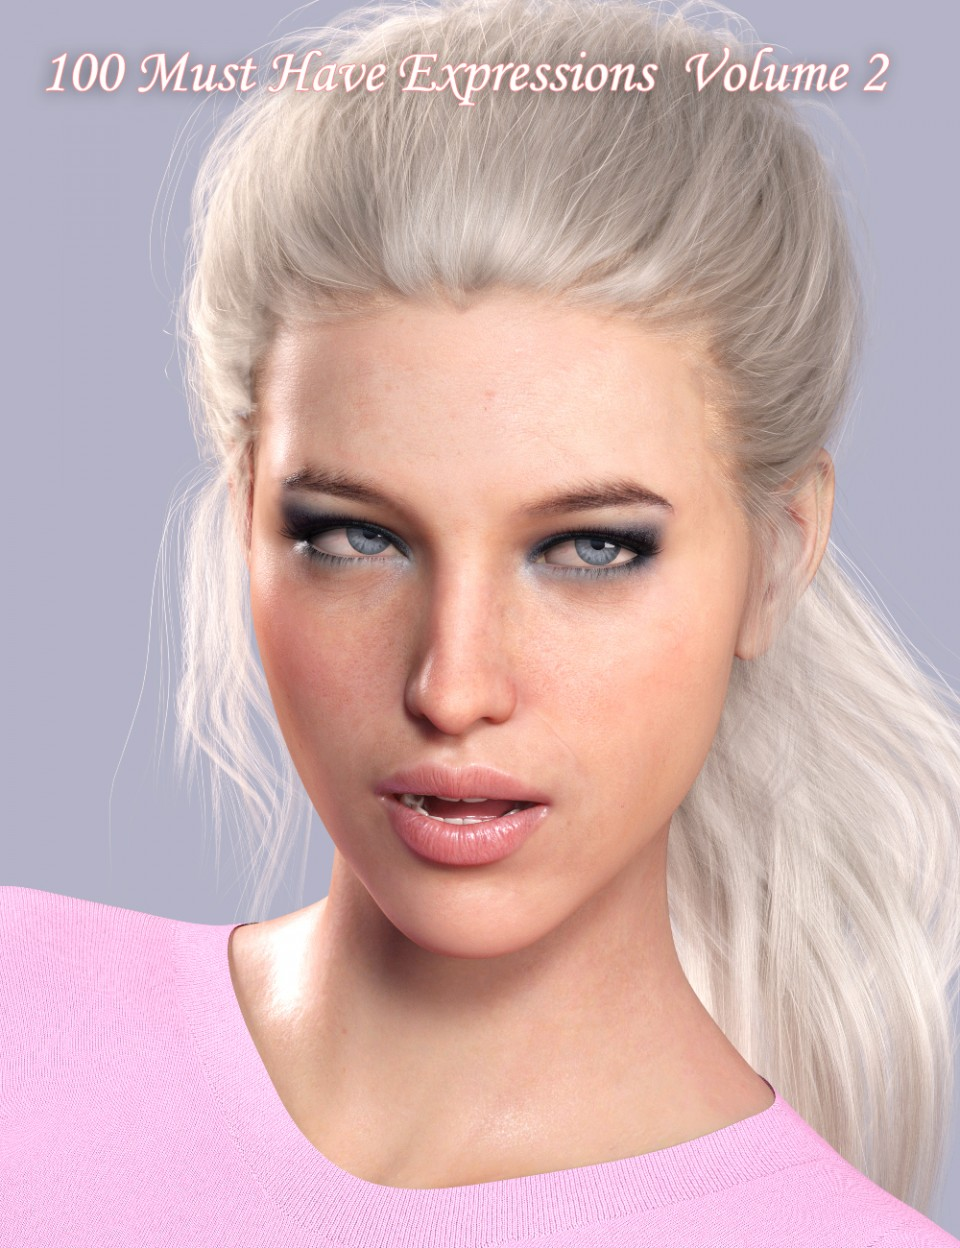 100 Must Have Expressions Volume 2 For Genesis 8 Female(s)